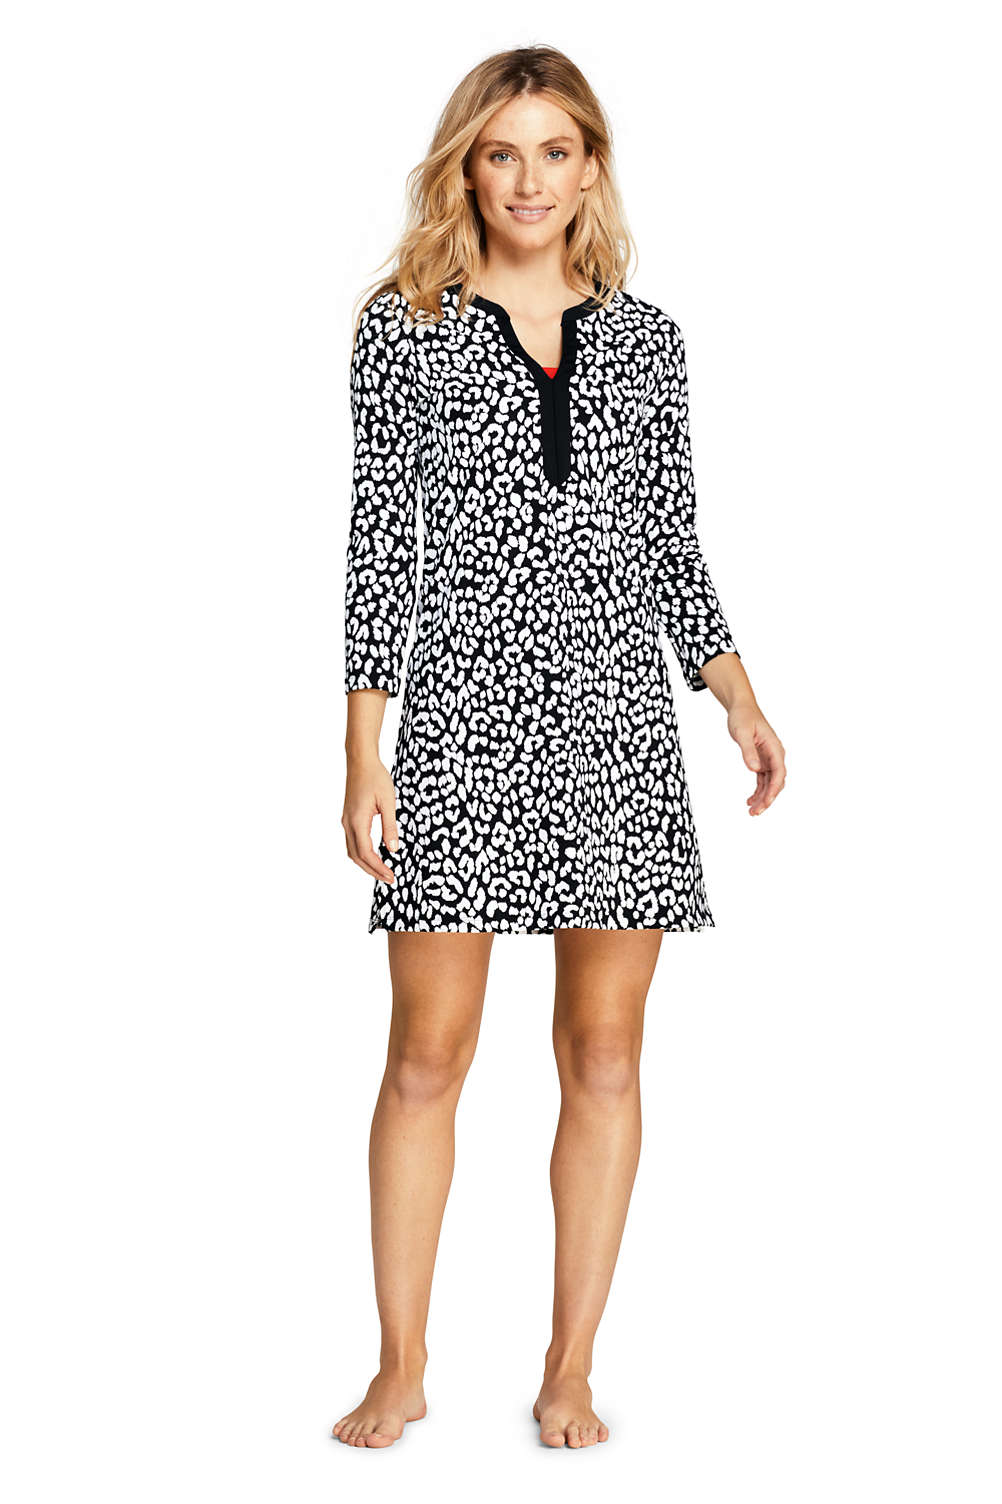 c929b4be57 Women's Swim Cover-up Tunic Dress with UV Protection Print from Lands' End